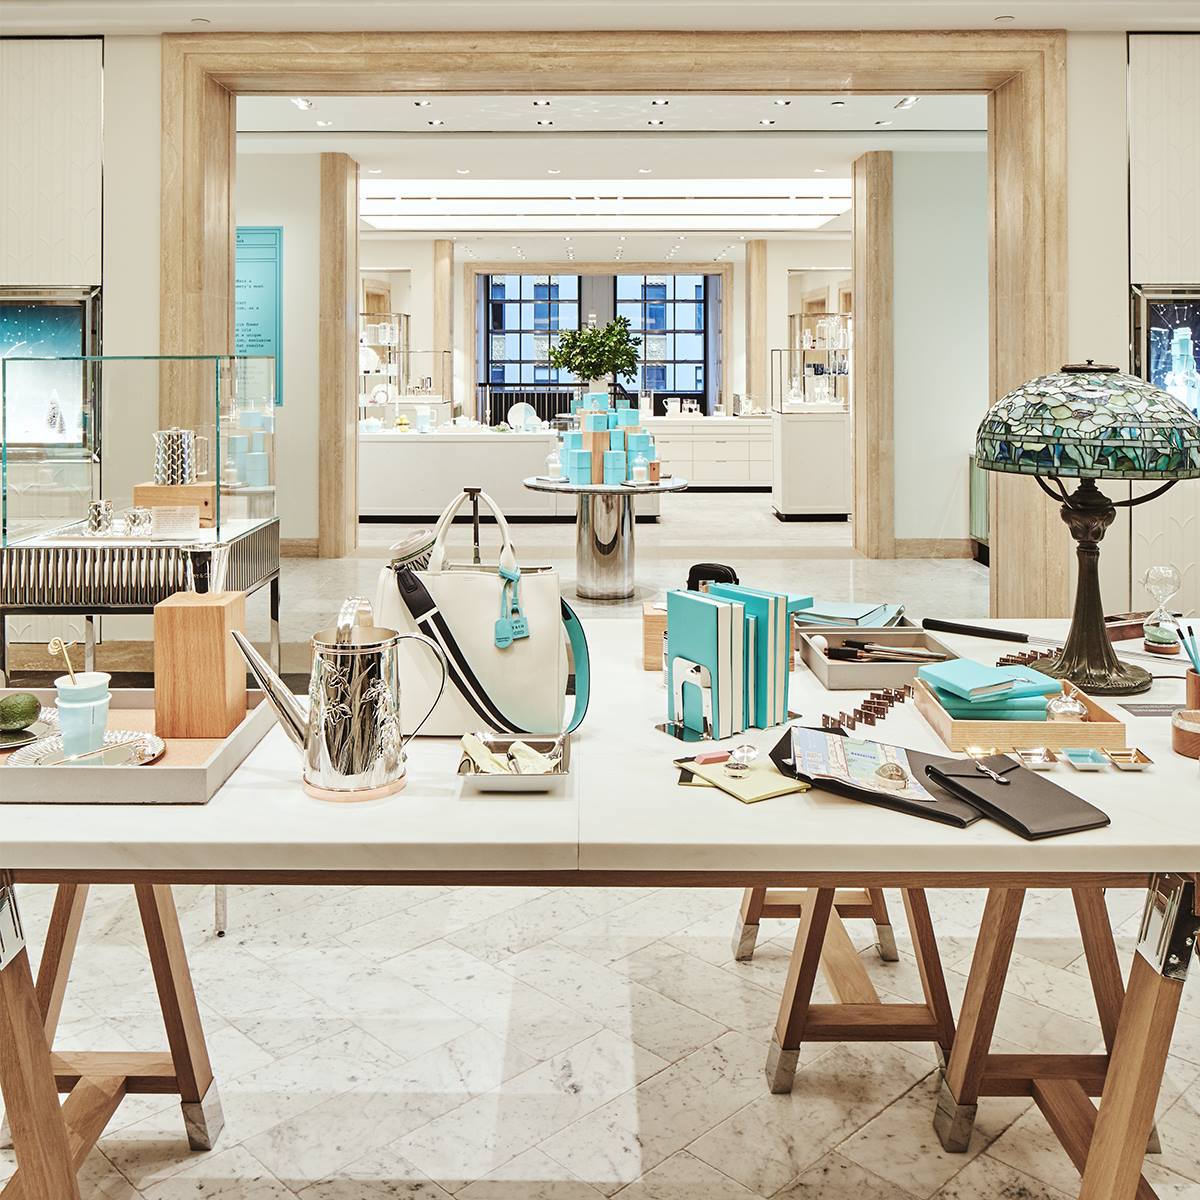 The new home and accessories floor at Tiffany's New York flagship